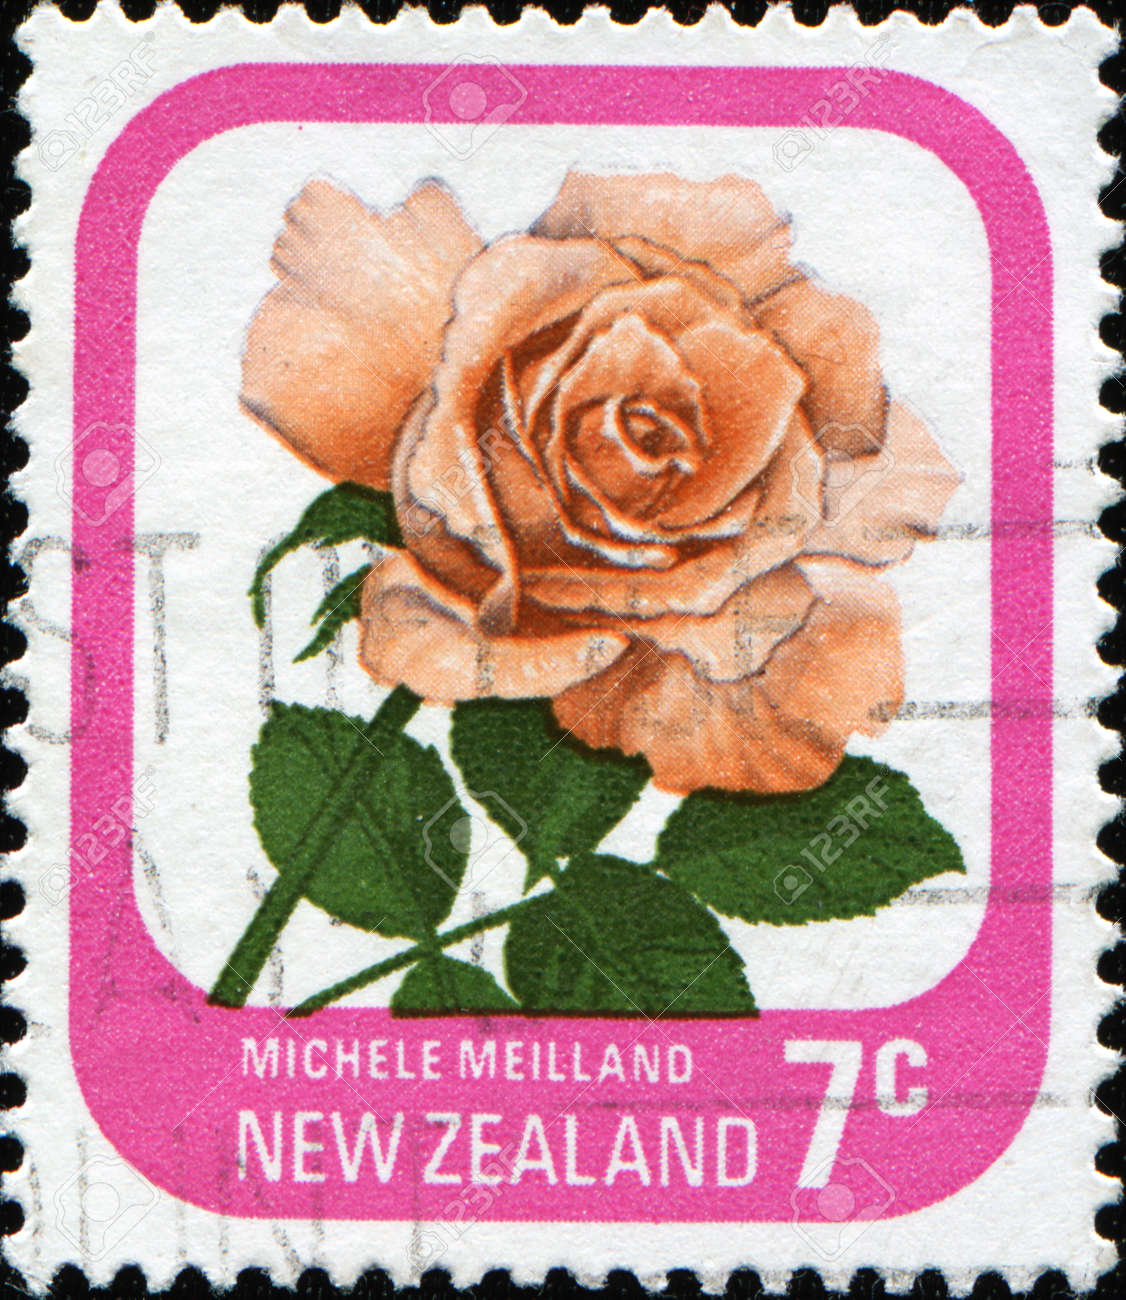 NEW ZEALAND - CIRCA 1975: A stamp printed in New Zealand shows rose Michele Meilland, series, circa 1975 Stock Photo - 11262137